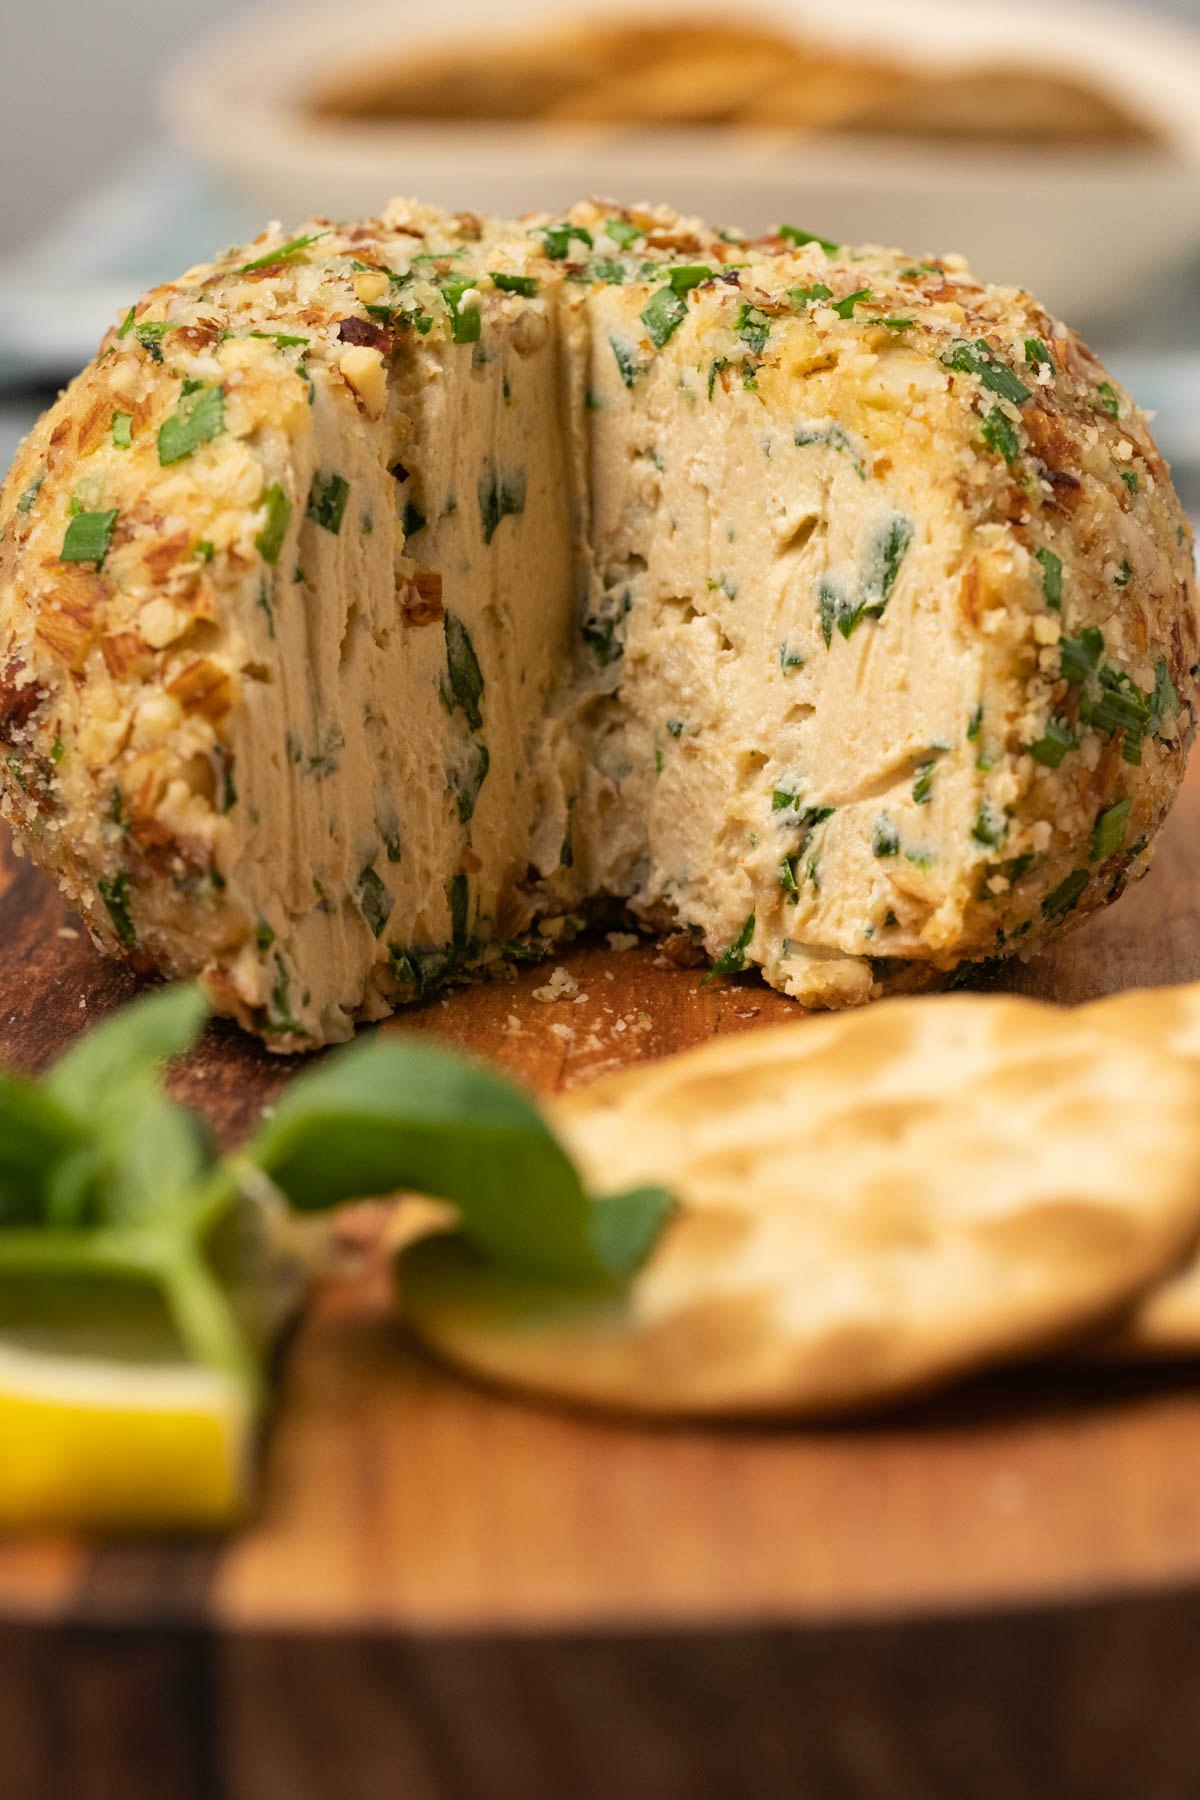 Cheese ball with crackers and basil on a wooden board.